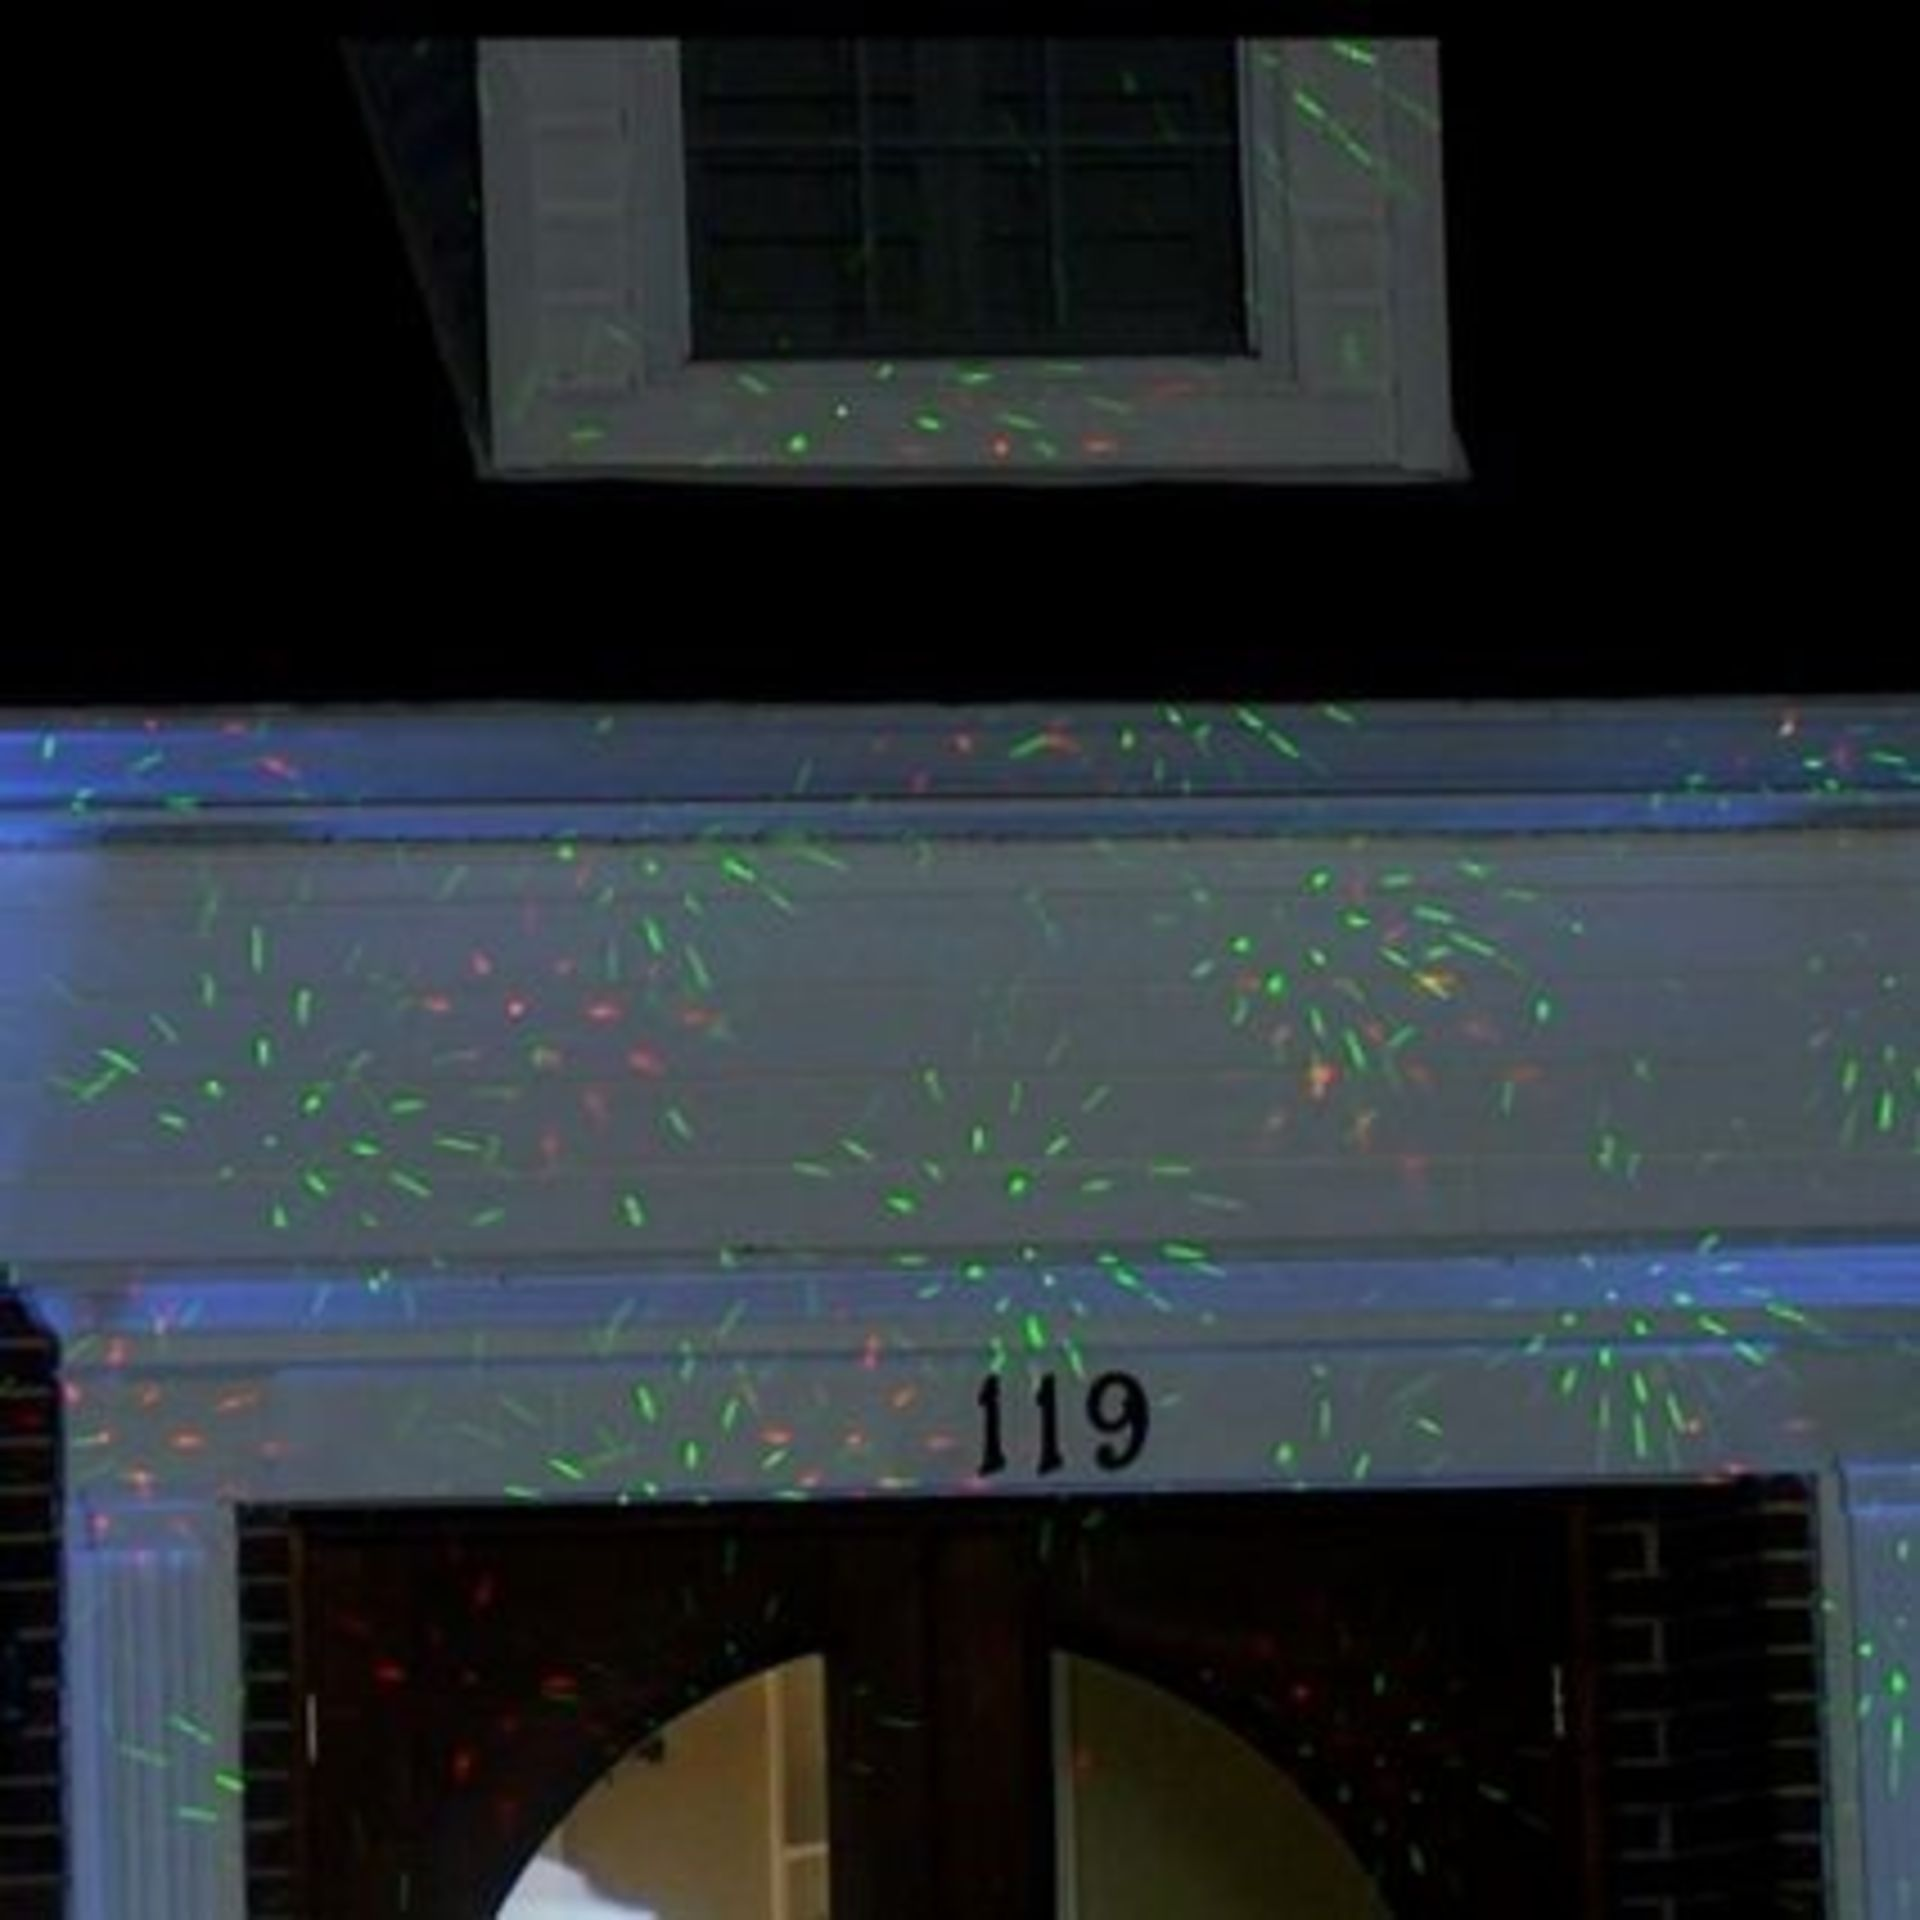   1X   BOX OF 6 STARTASTIC ACTION LASER PROJECTORS WITH 6 LASER MODES   NEW AND BOXED   SKU - Image 7 of 8